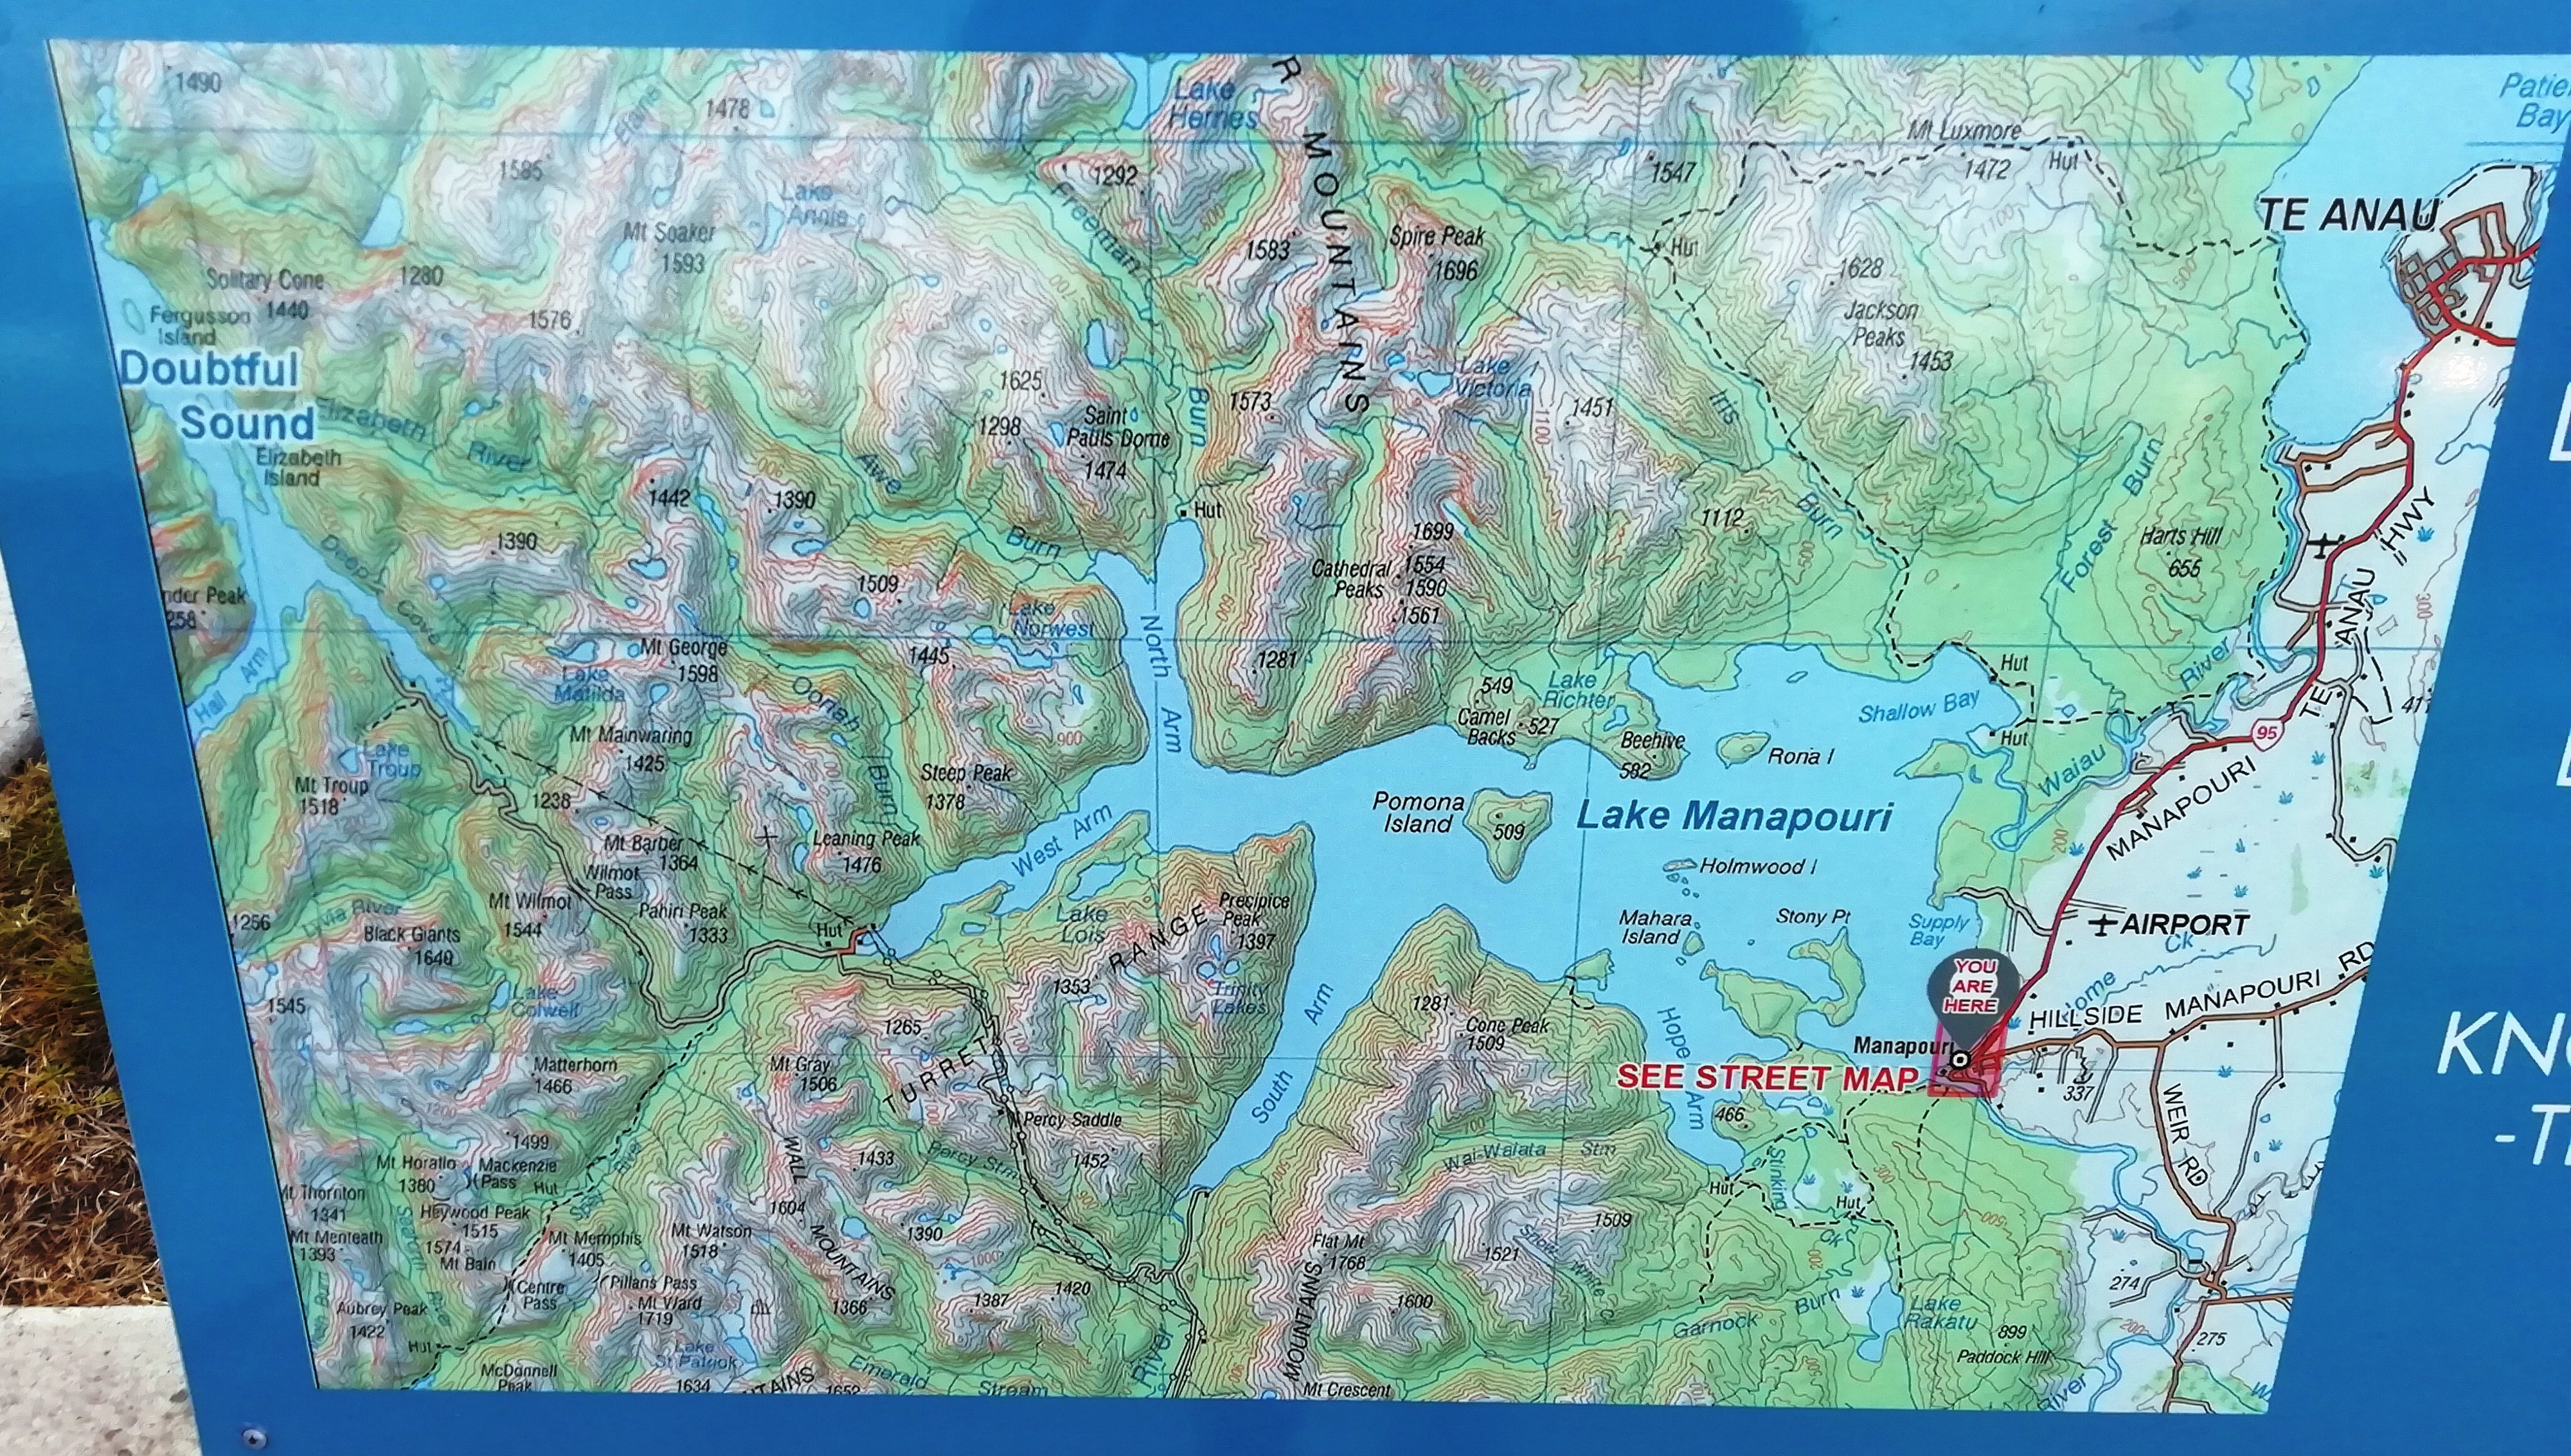 A topographical map of lake Manapōuri and environs on a signboard